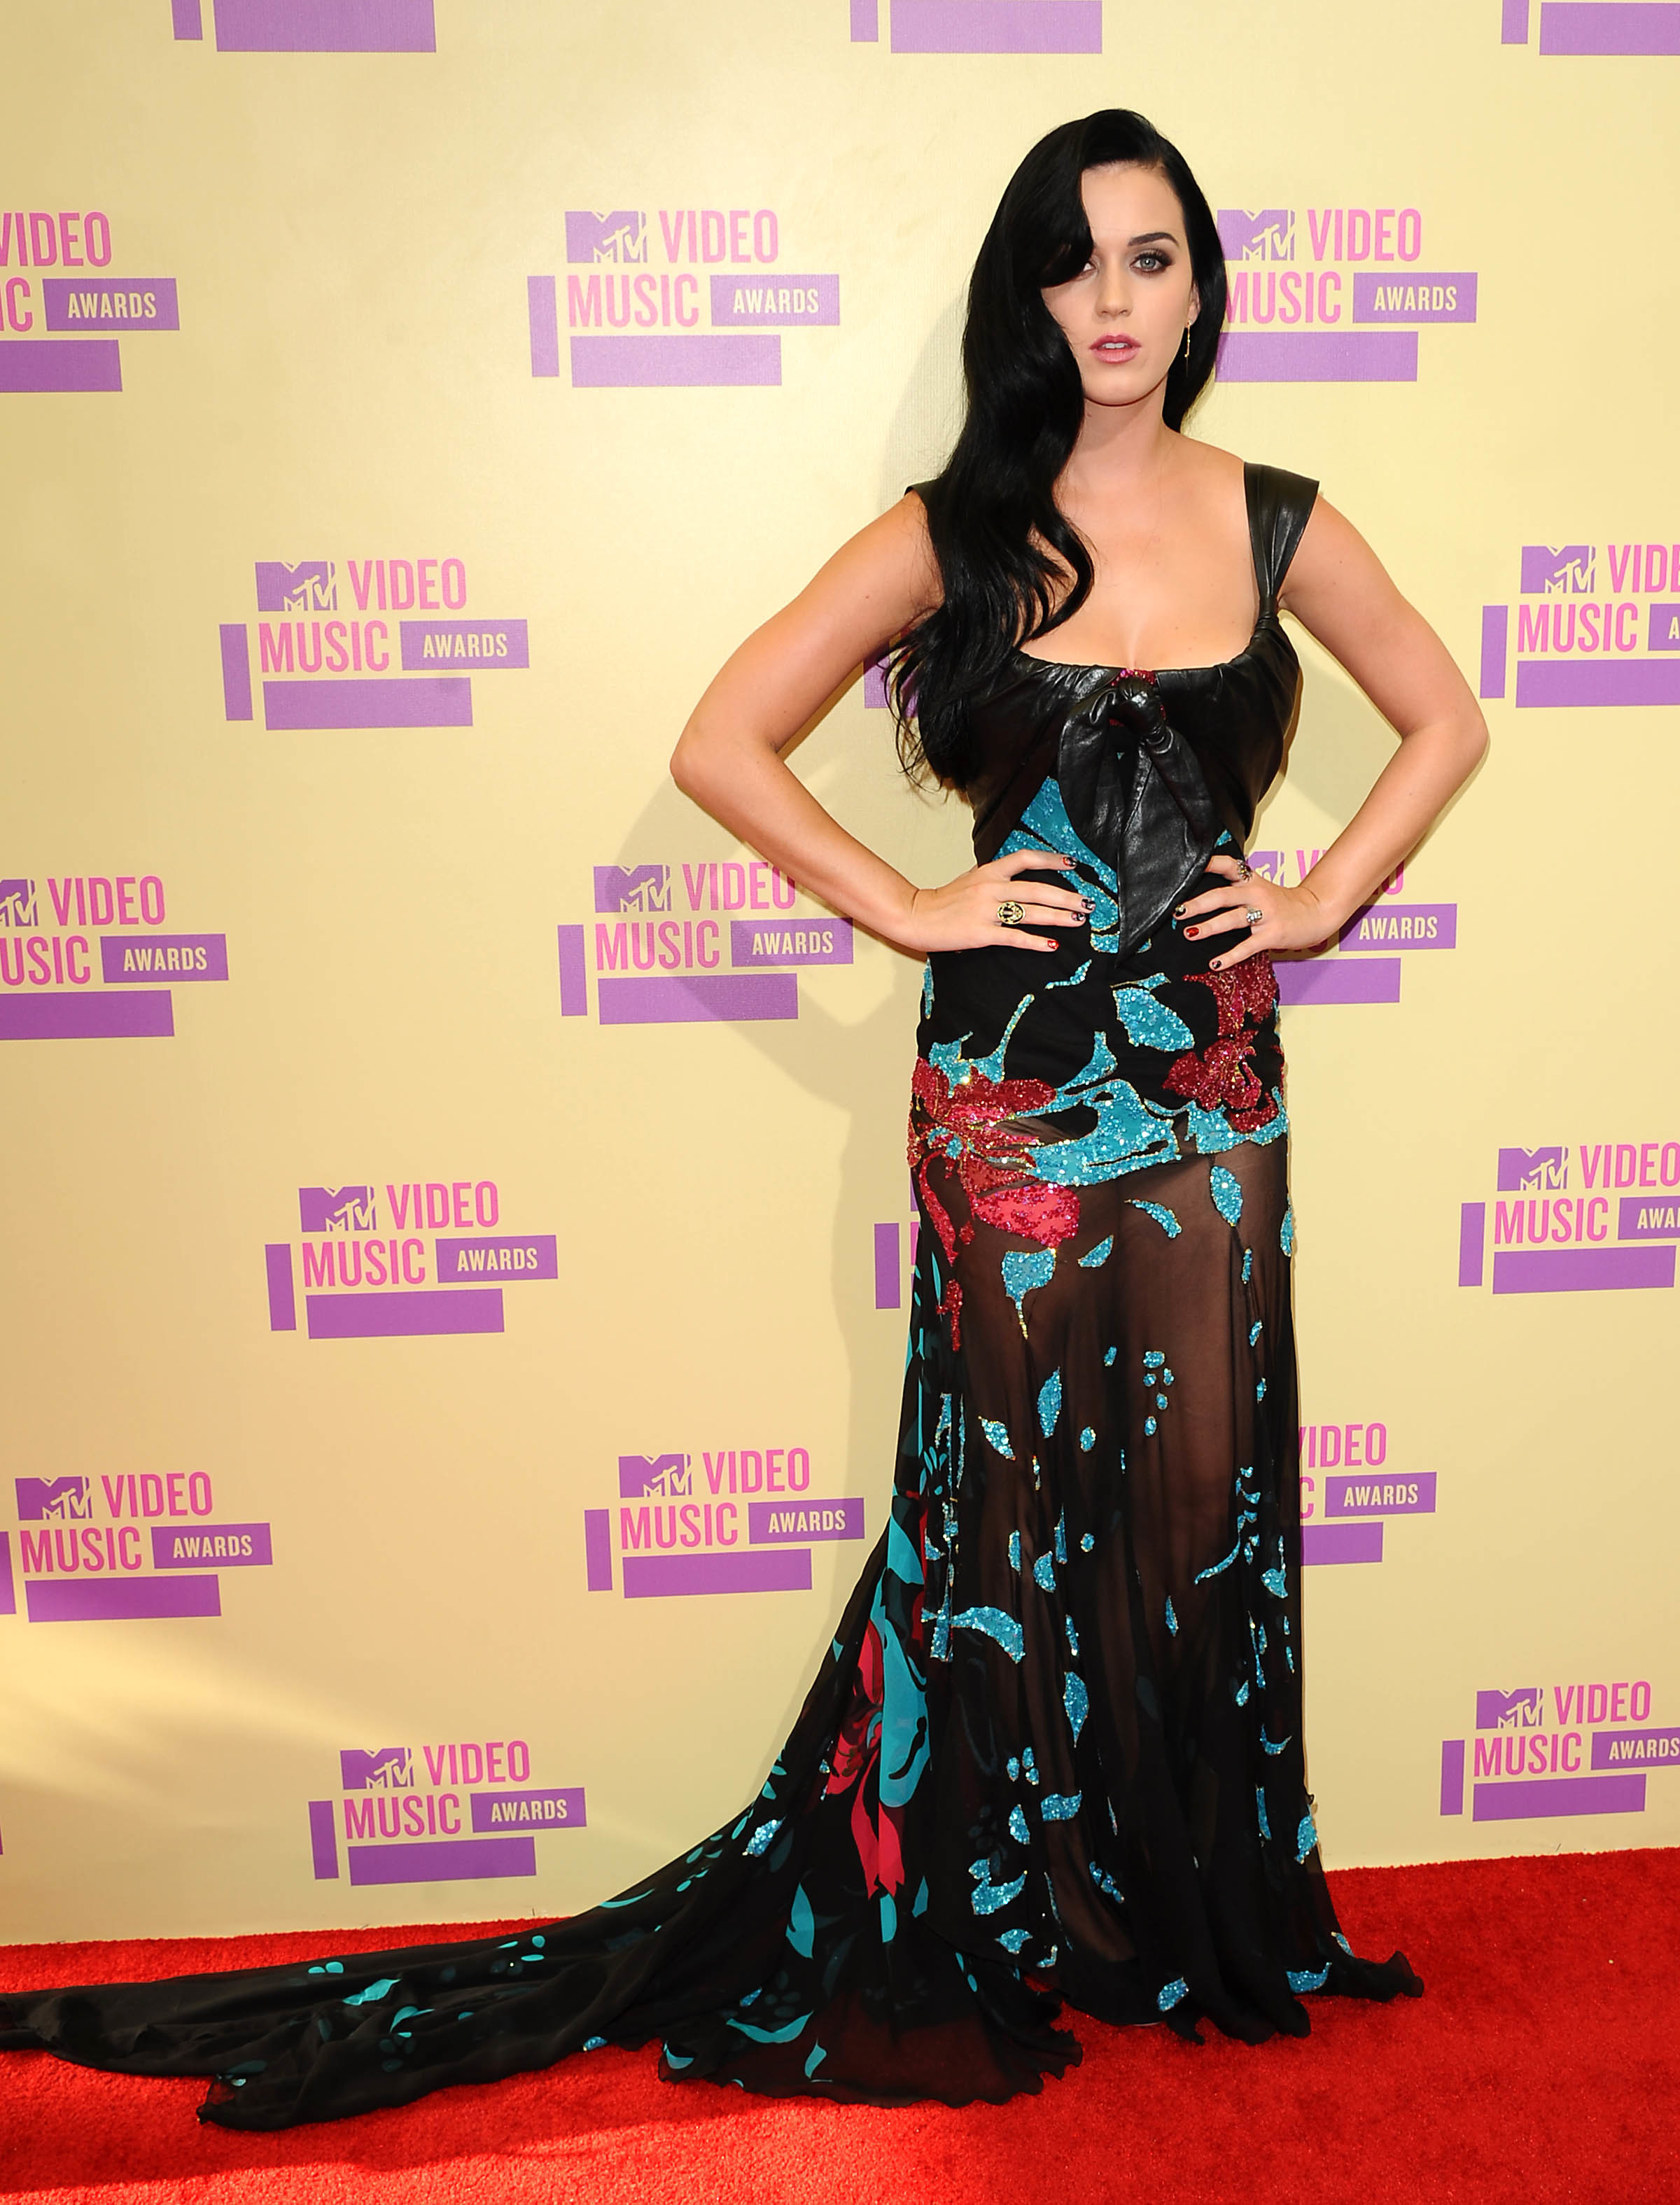 Katy Perry fashion